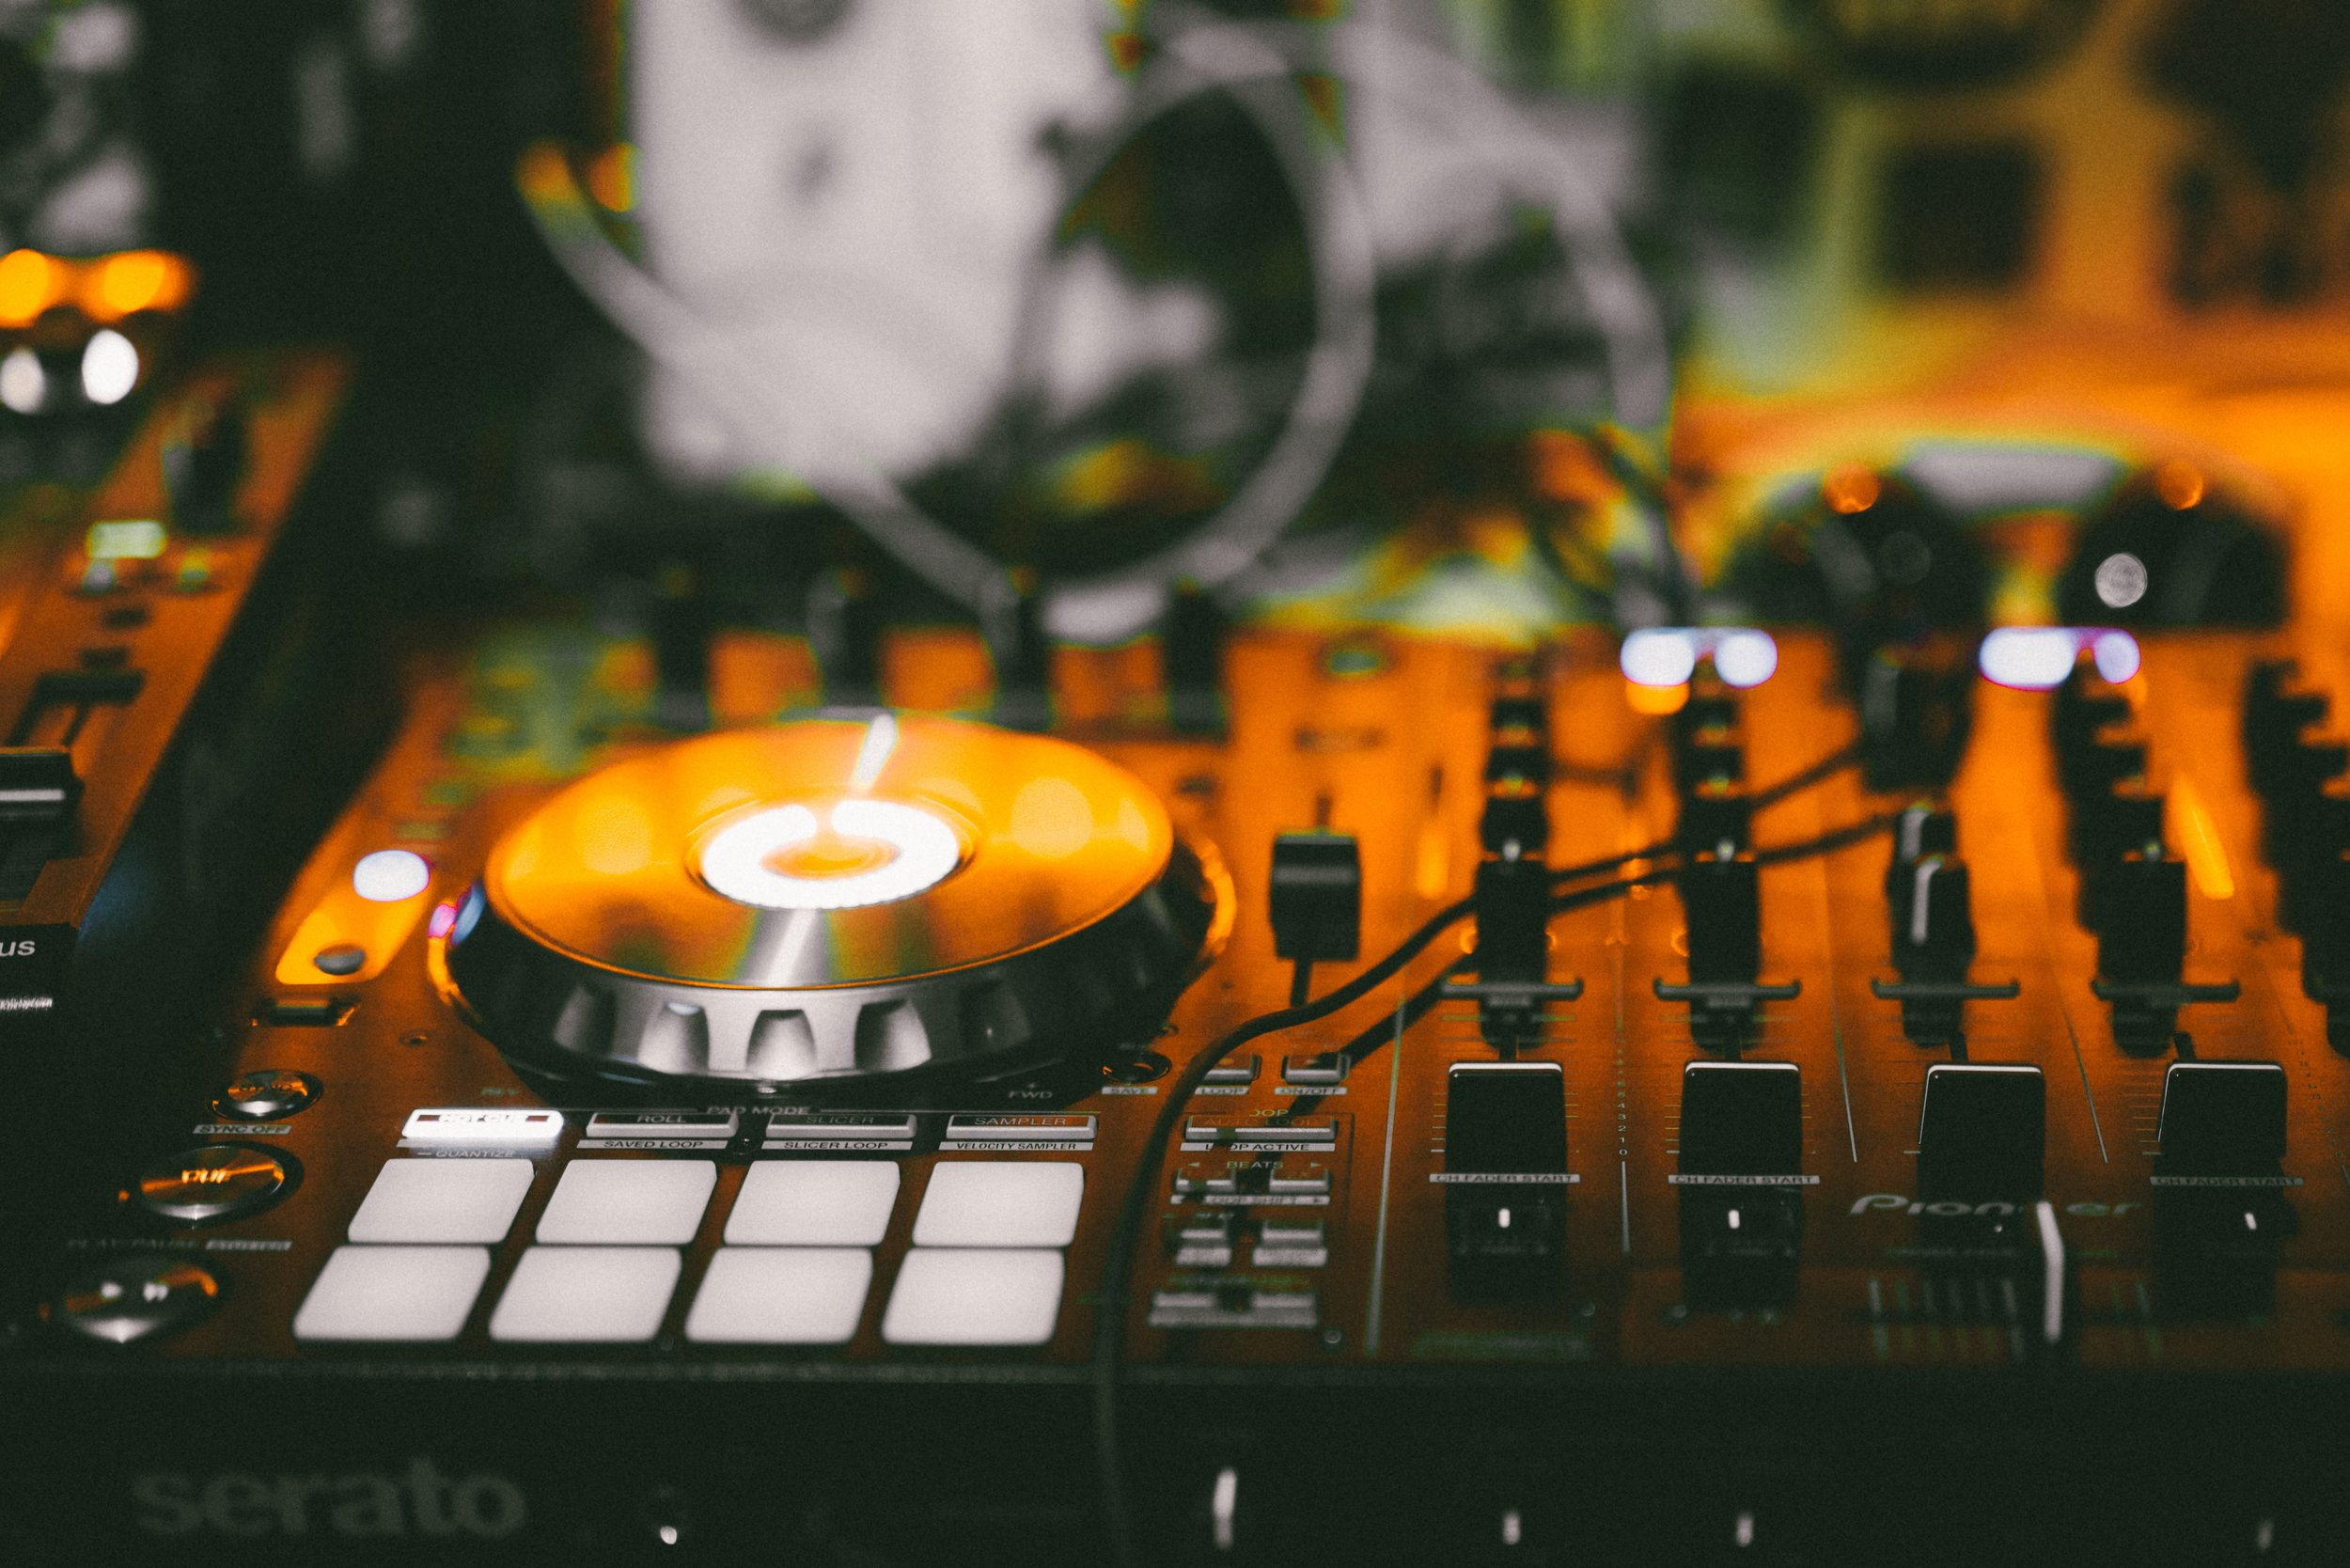 DJ NIGHT PROGRAM - A 16 WEEK DJ AND PERFORMANCE NIGHT COURSE FOR FUTURE PARTY MAKERS